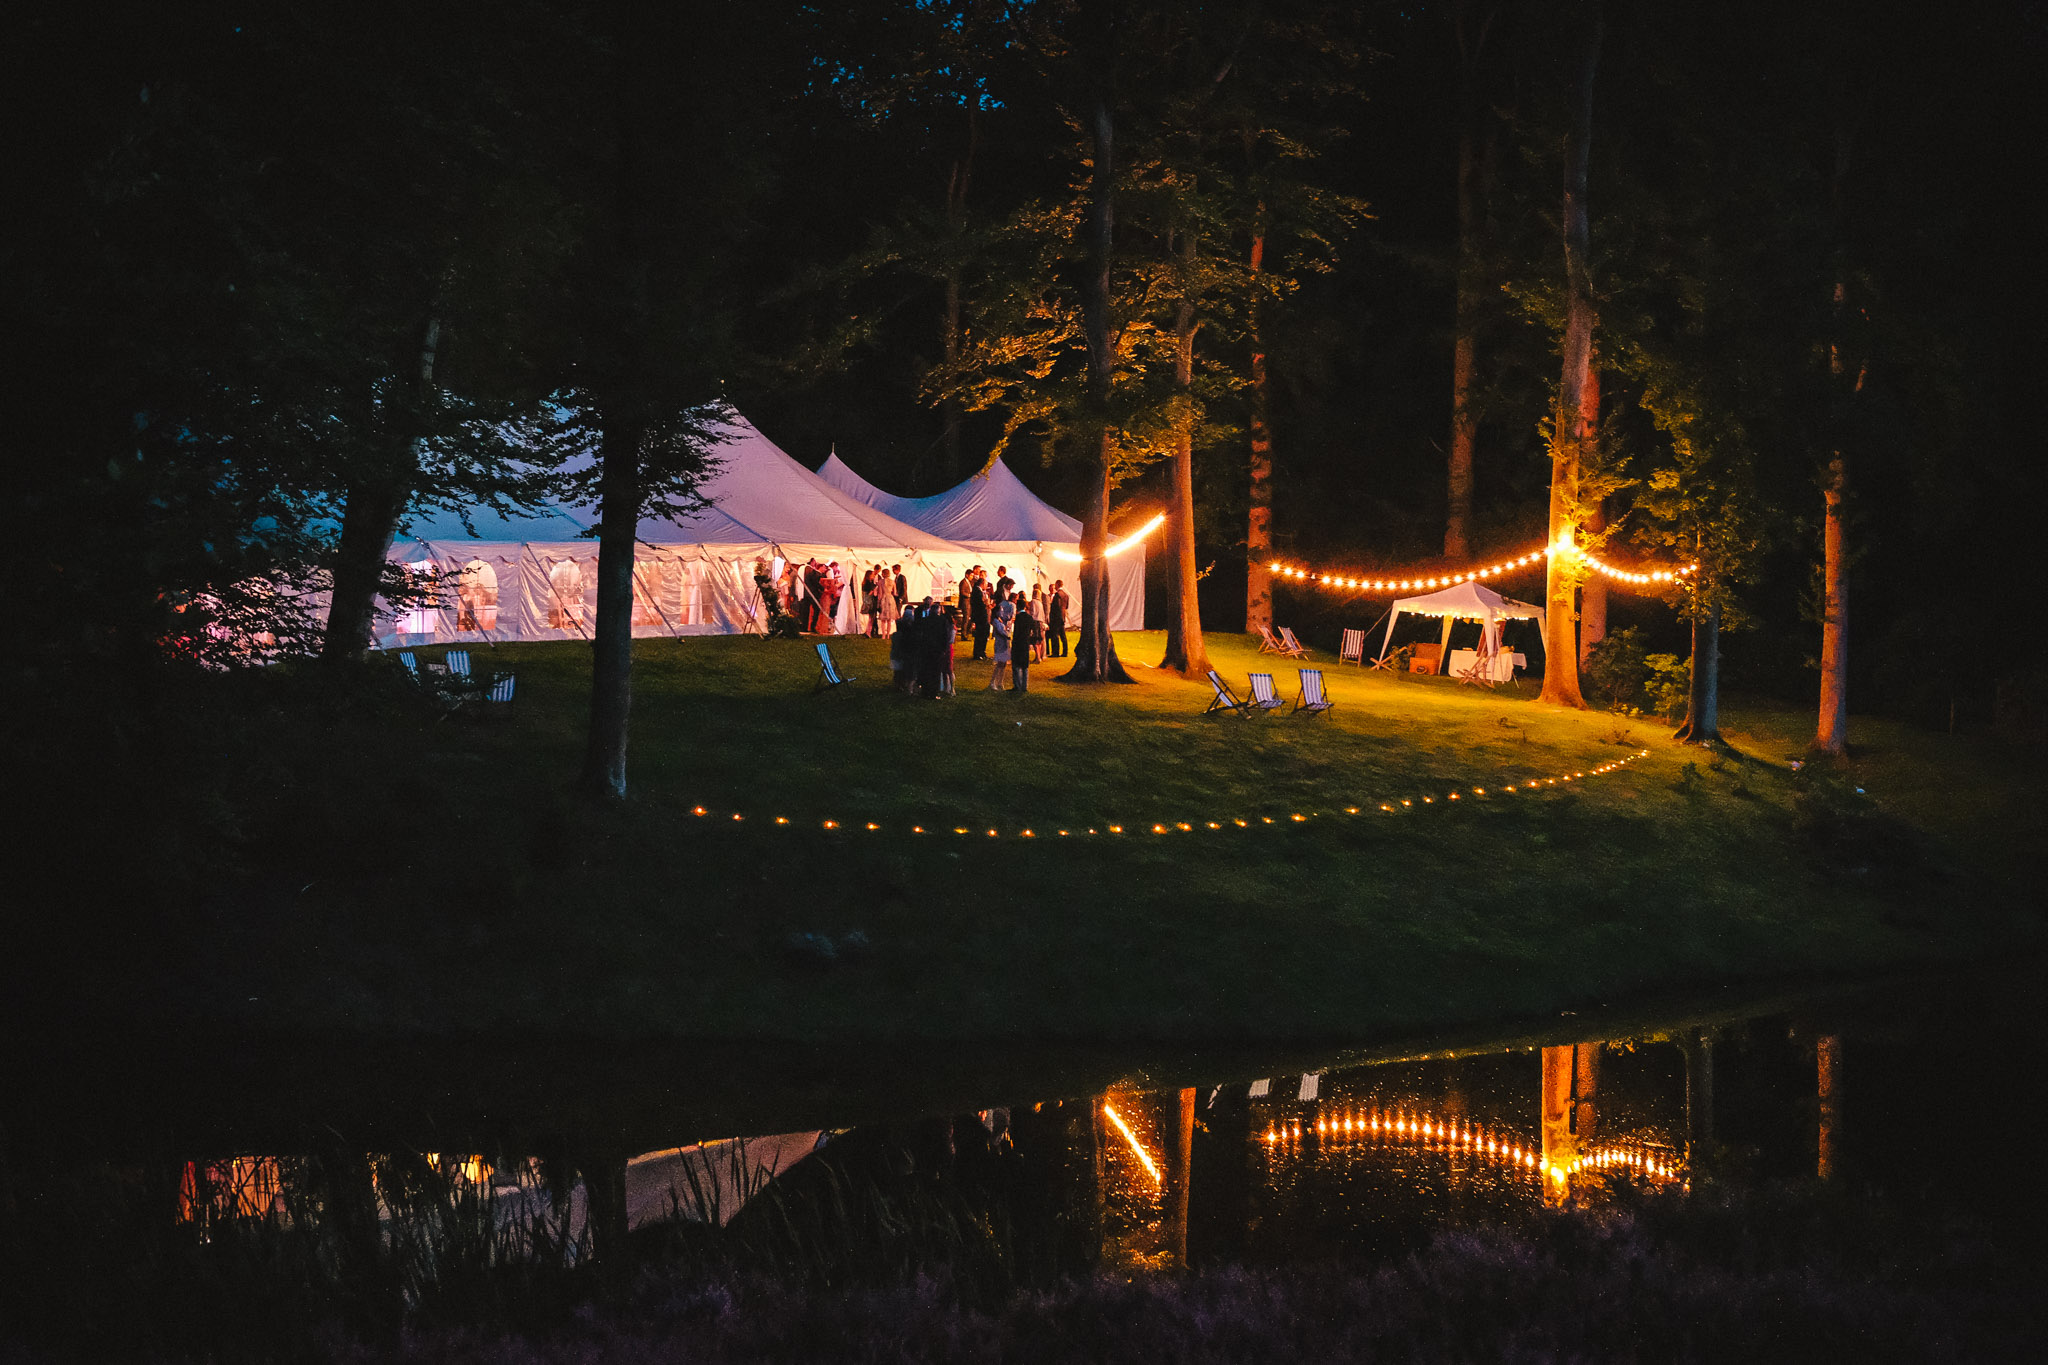 Forest lakeside wedding reception in lighted tent- photo by Andrew Billington Photography